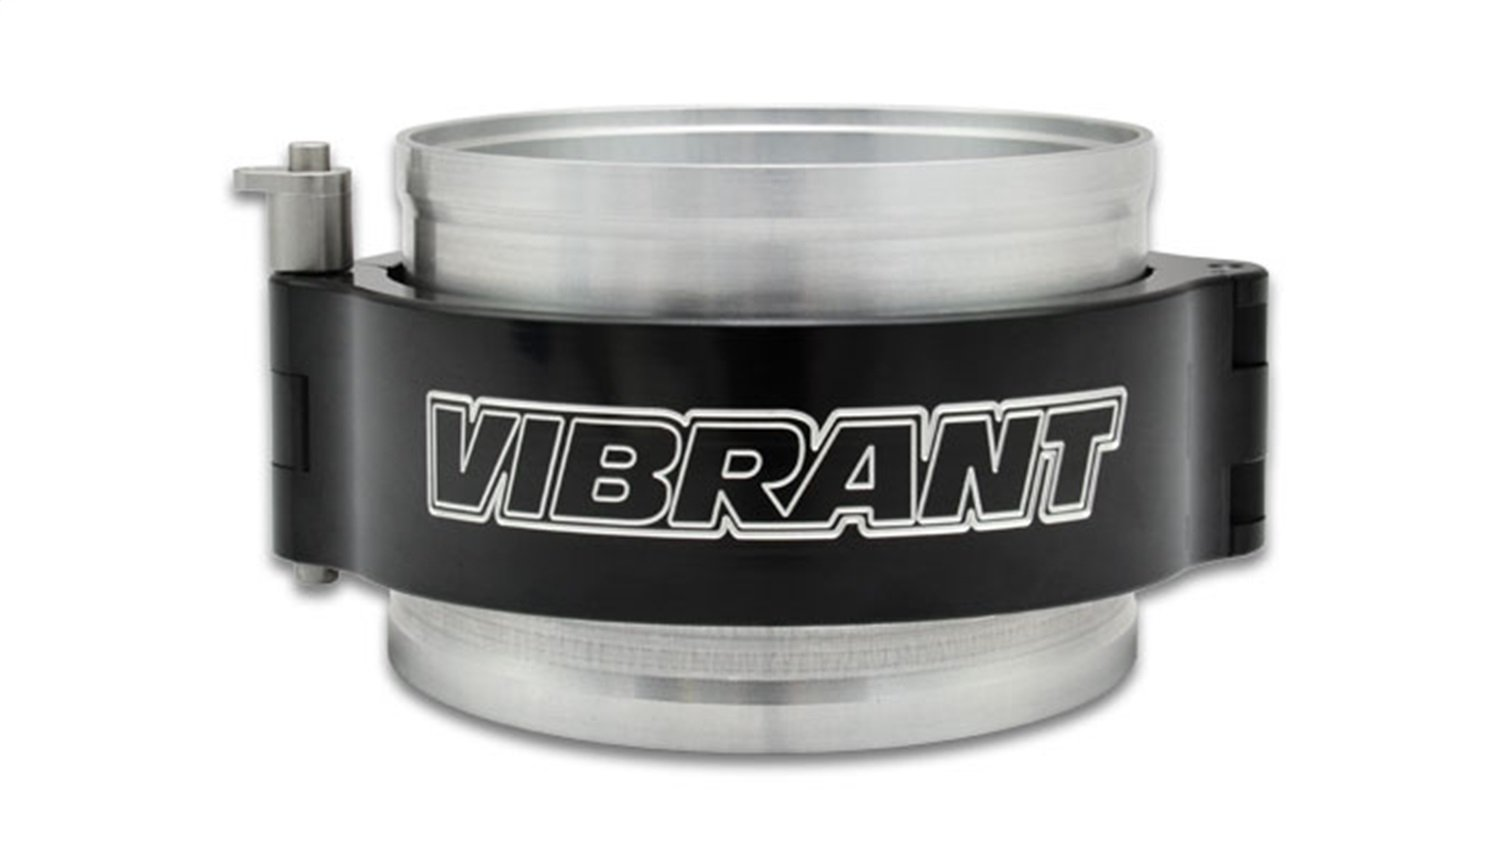 Vibrant Performance 12516 Vibrant HD Clamp System Assembly by Vibrant Performance